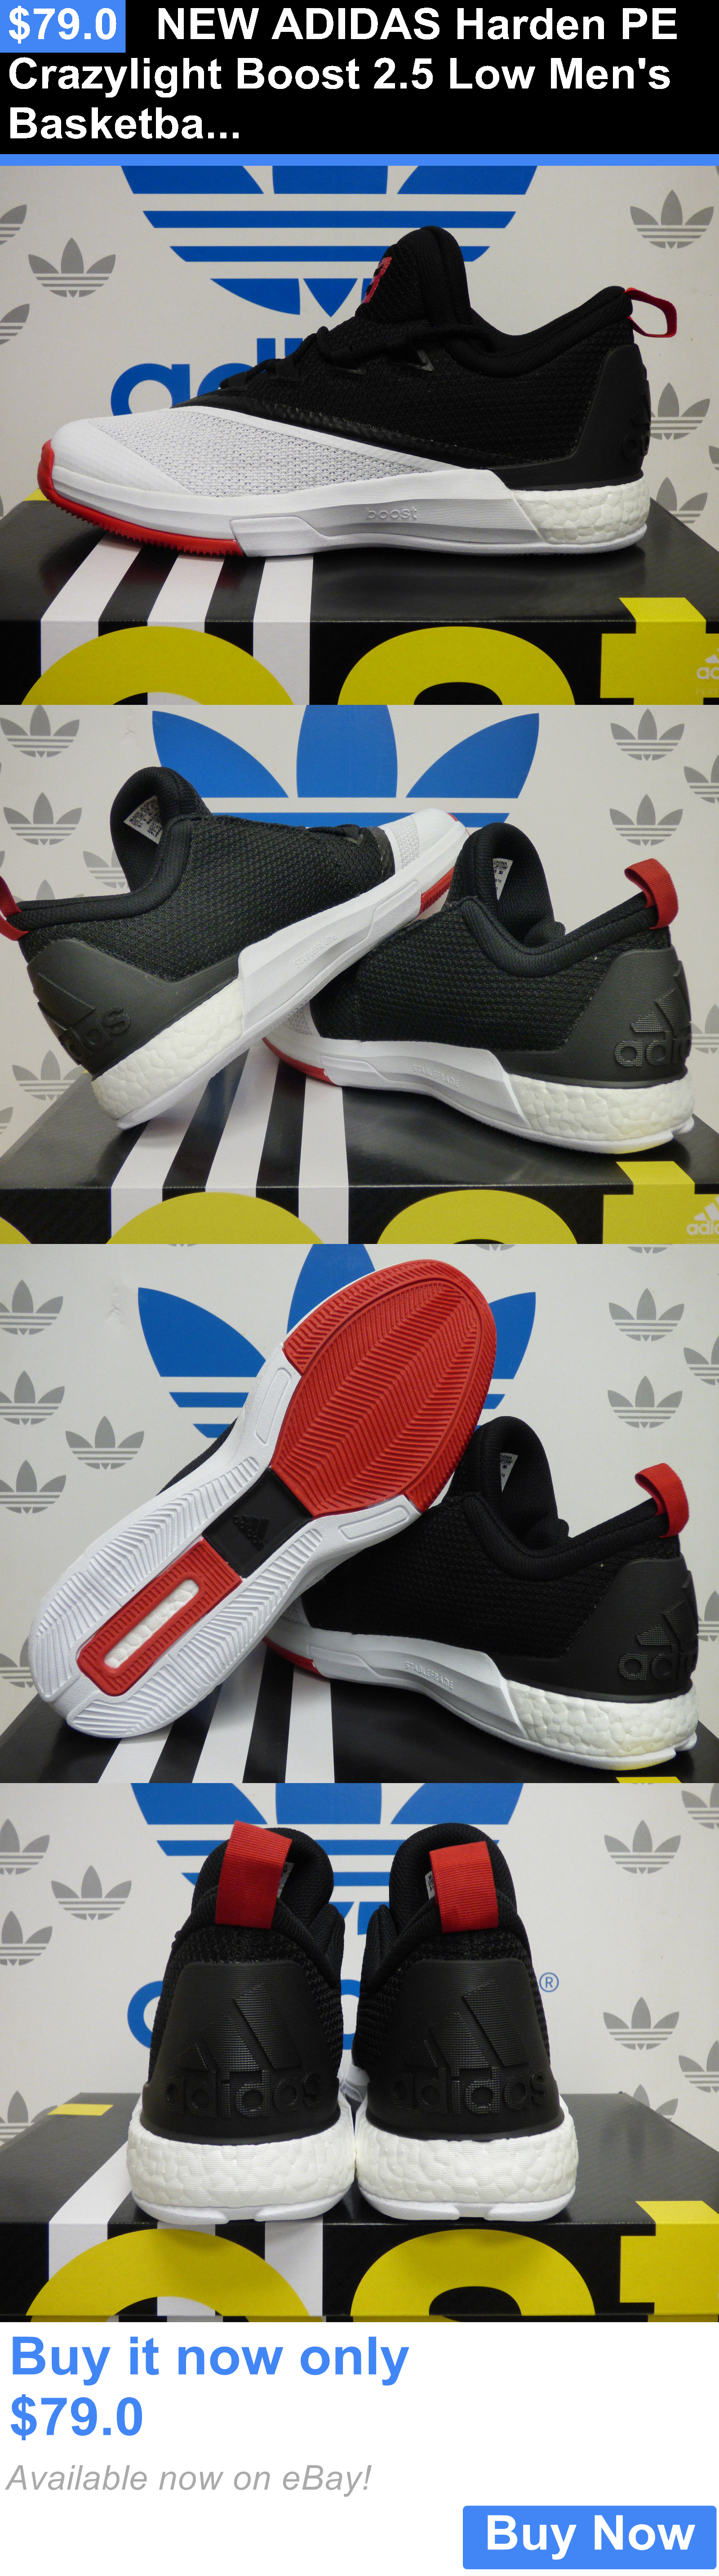 c2ddfb58d77c Basketball  New Adidas Harden Pe Crazylight Boost 2.5 Low Mens Basketball  Shoes - B42728 BUY IT NOW ONLY   79.0